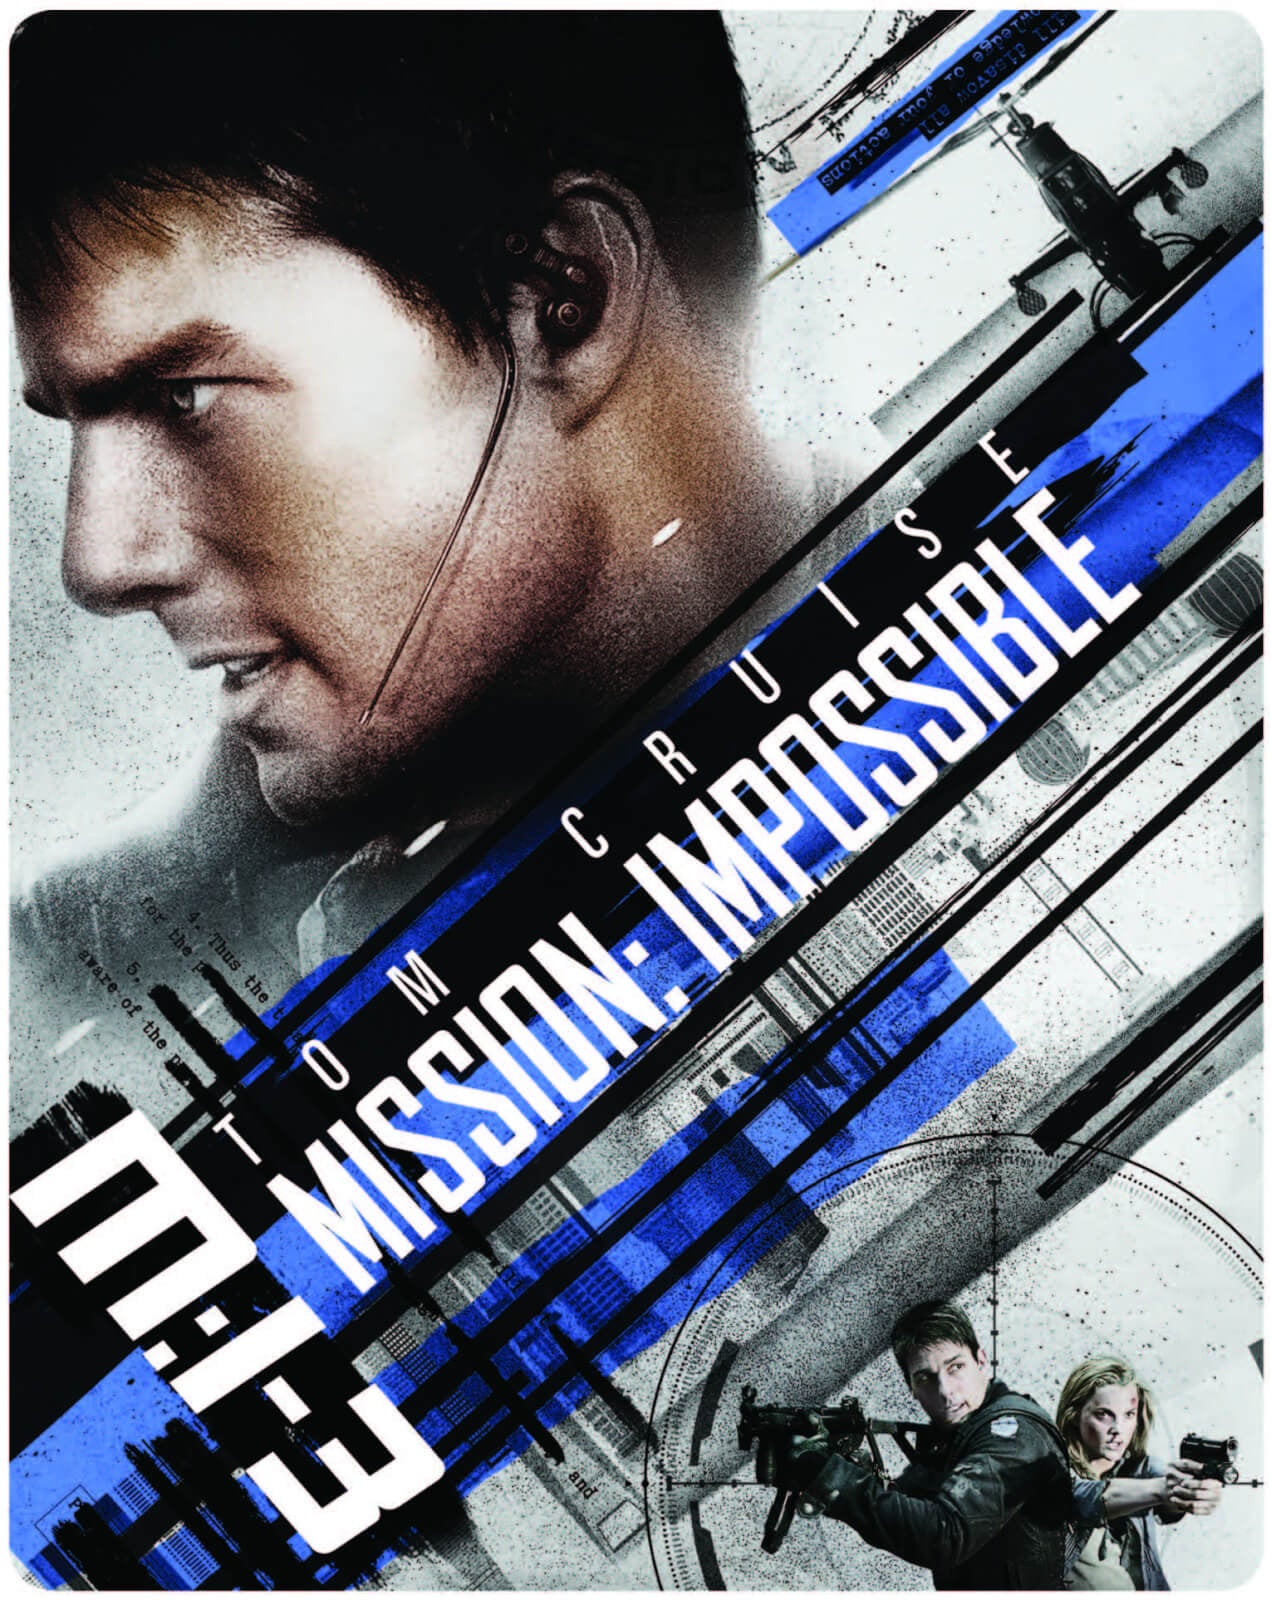 Mission Impossible 3 (2006) Vudu HD redemption only